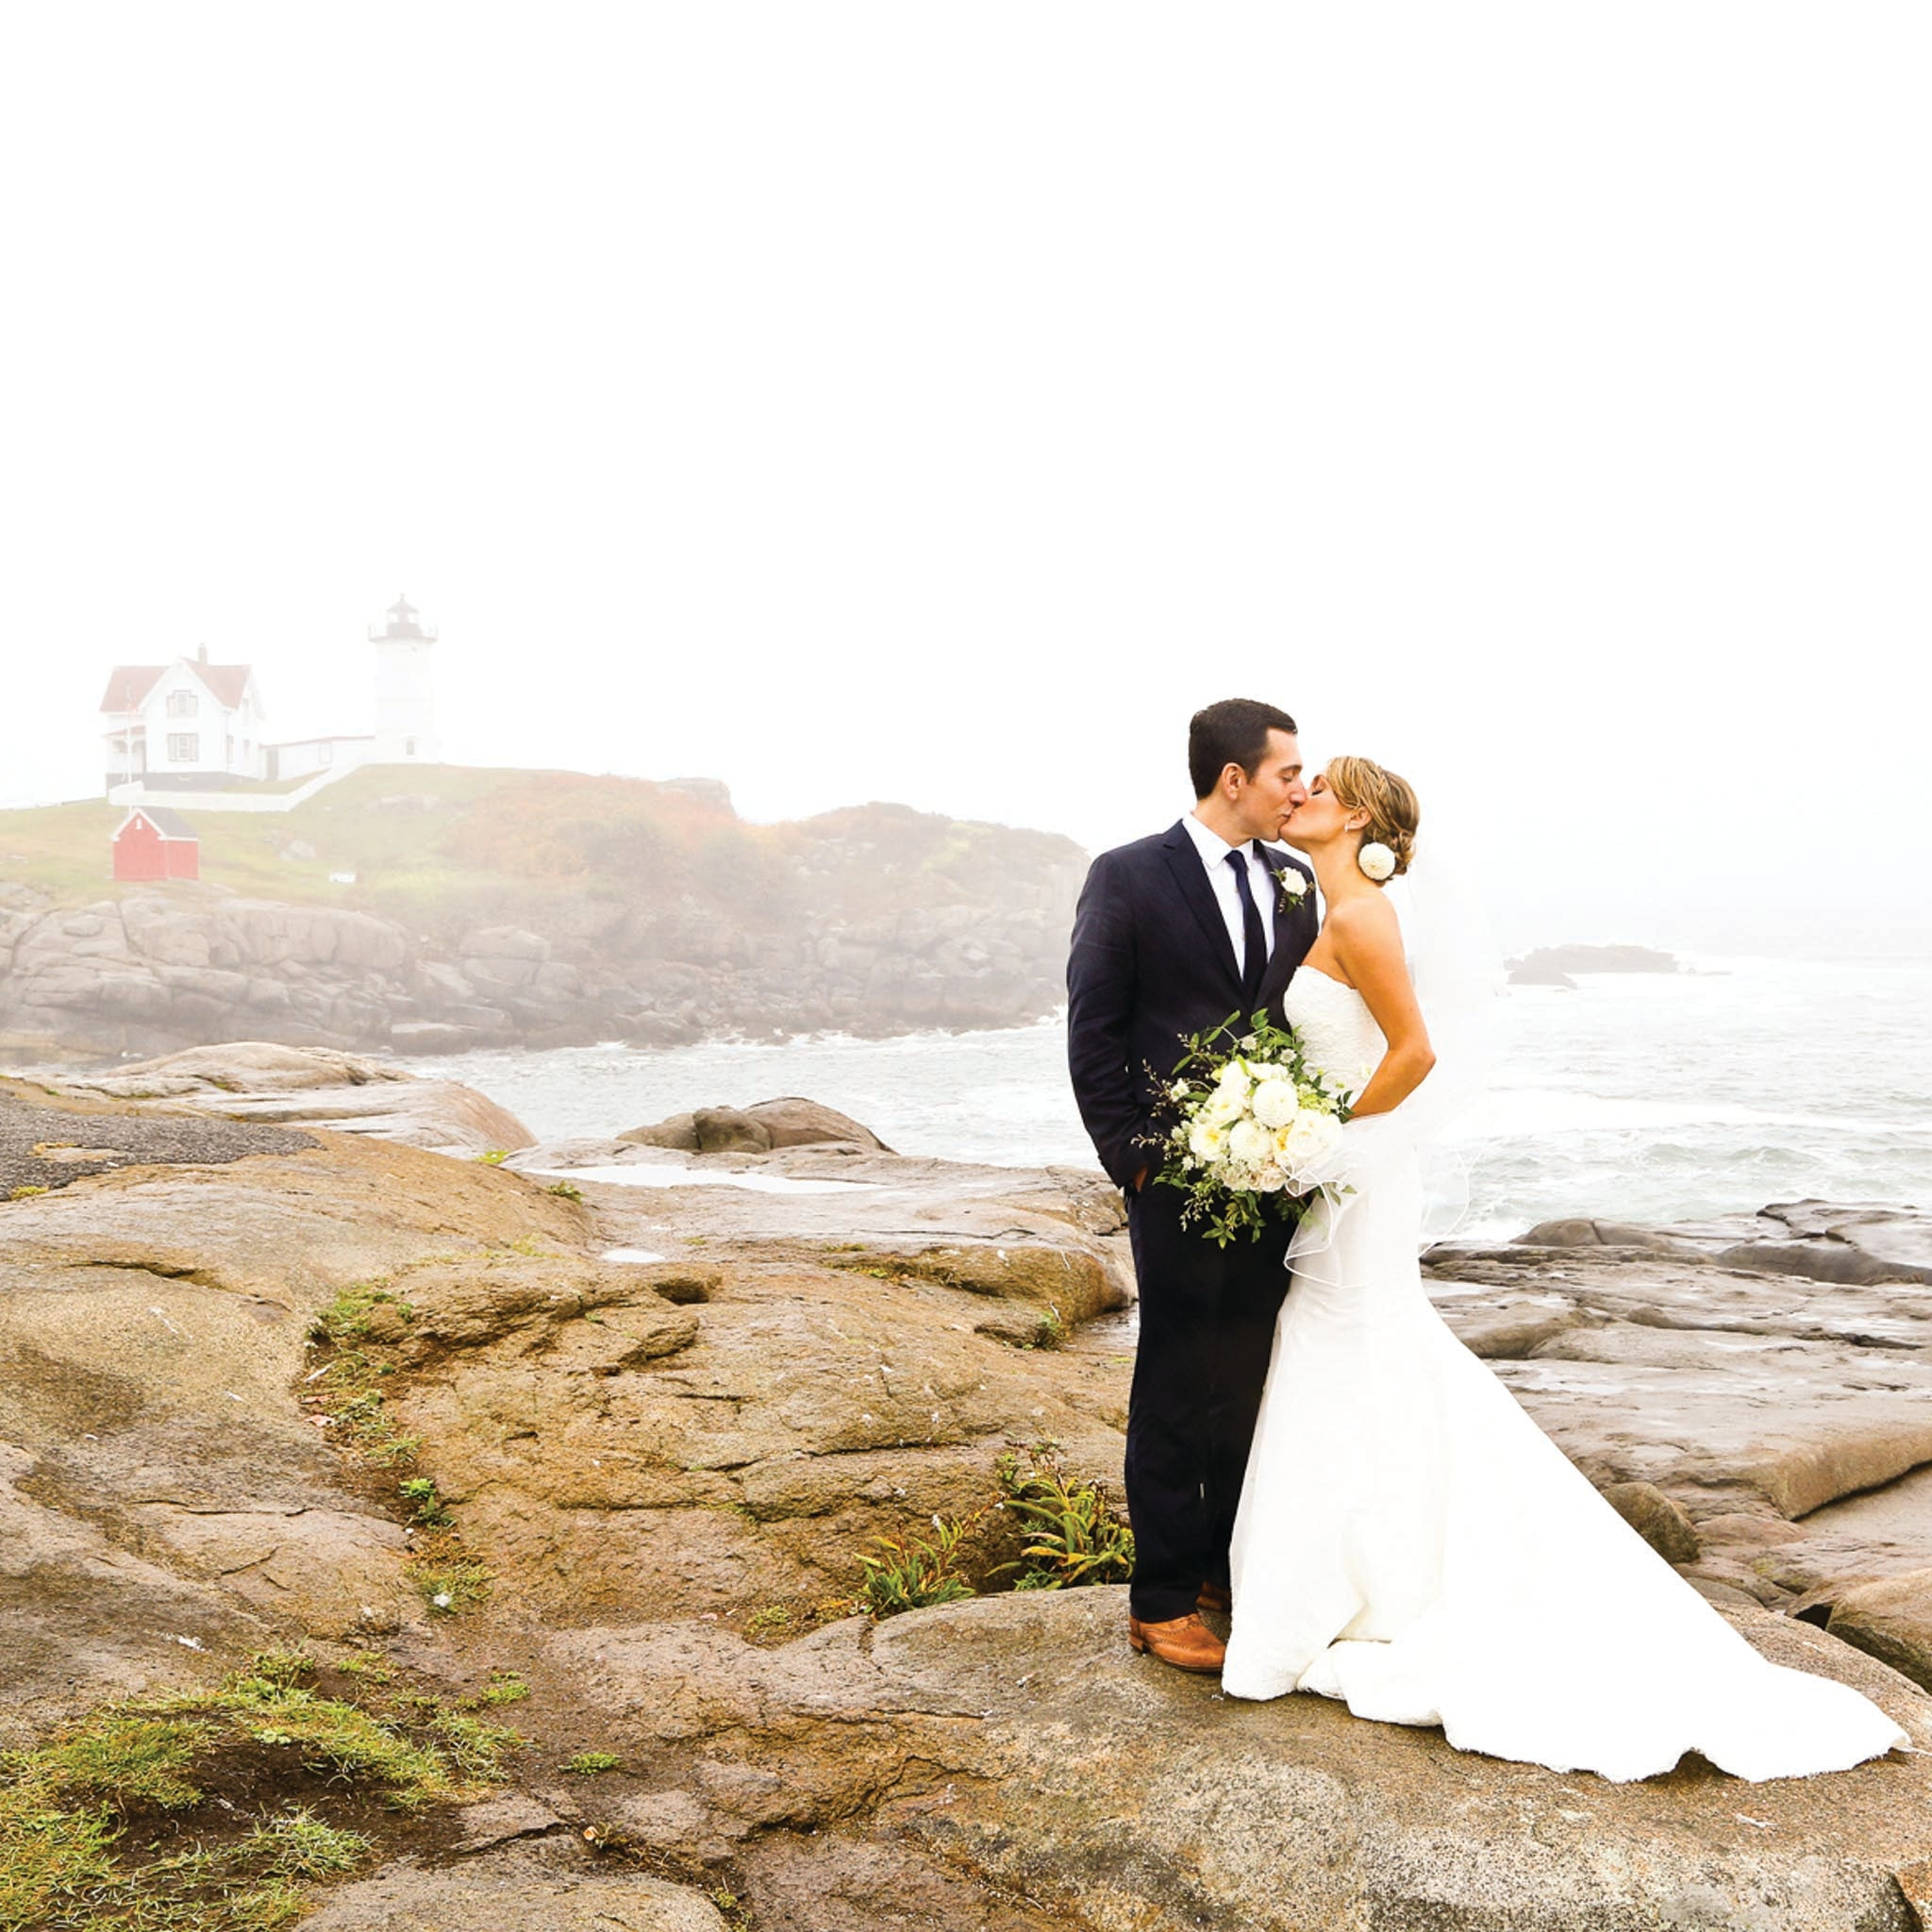 York Maine Wedding Jardiniere Flowers Weddings Portsmouth New Hampshire Wedding Flowers Garden Seacoast Wedding York Harbour Beach Wedding Wiggly Bridge Nubble Lighthouse